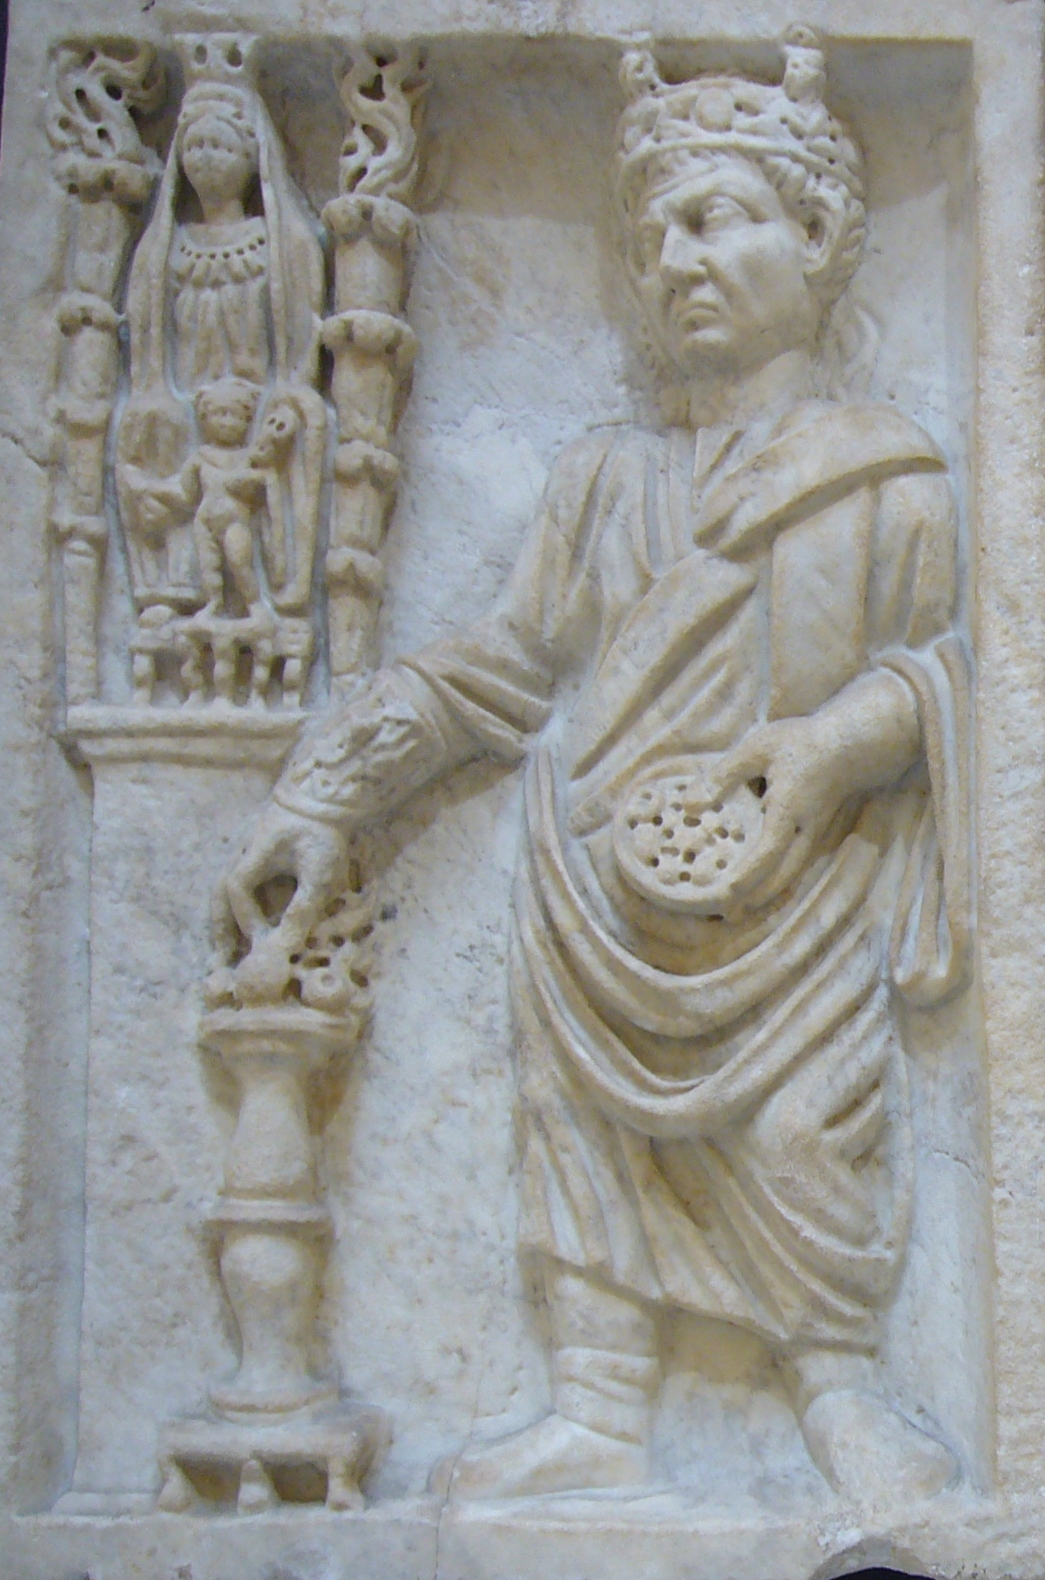 http://upload.wikimedia.org/wikipedia/commons/c/c9/Sacrifice_to_Cybele_-_Ostia_Antica.JPG